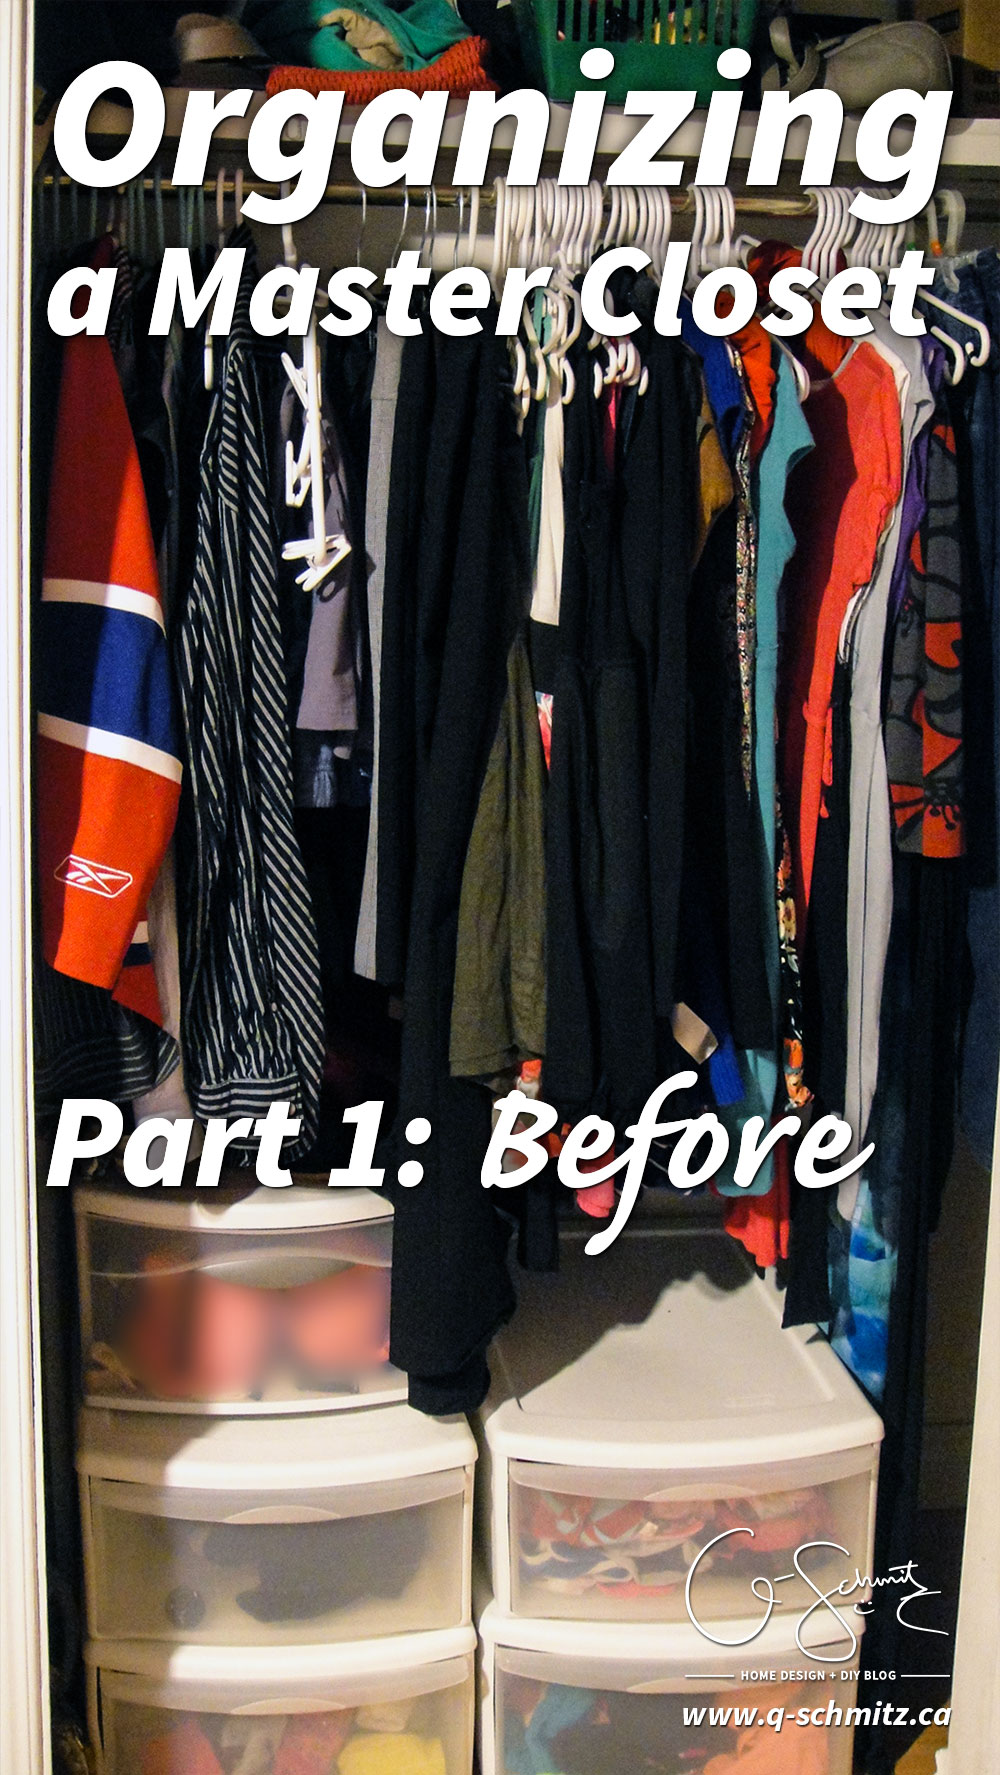 Organizing a master closet is a project that took us less than an afternoon to complete, and really changed the space. But this is just Part 1…